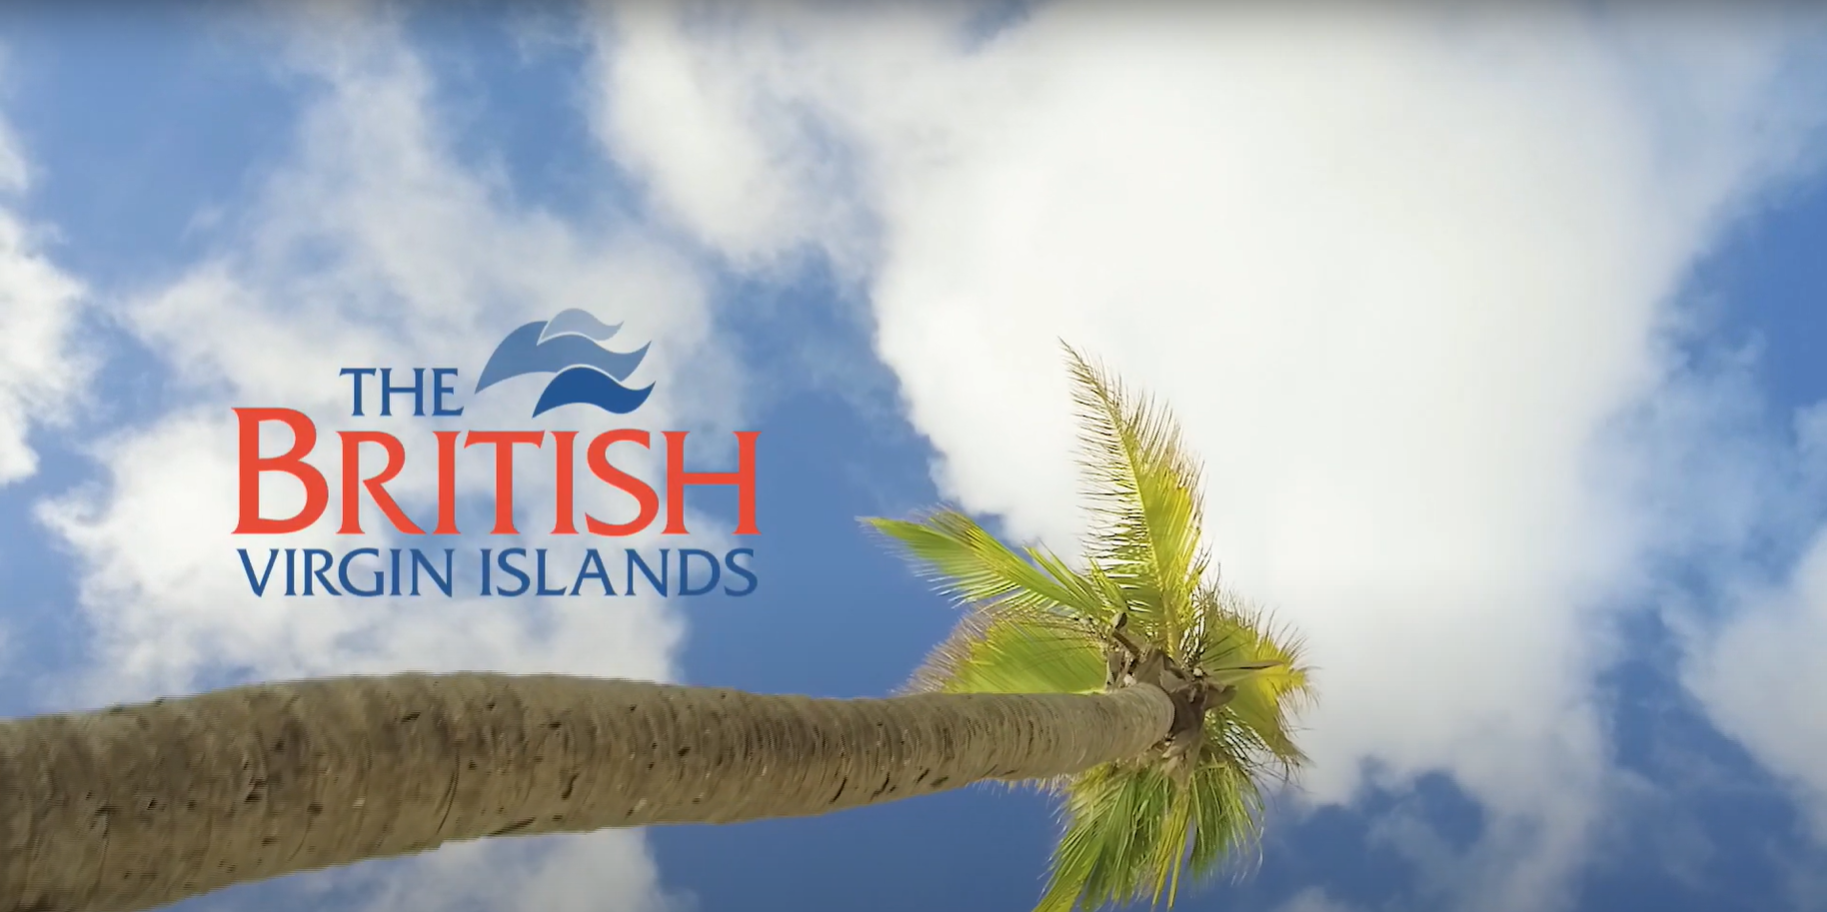 Palm Tree with sky behind it and British Virgin Islands logo